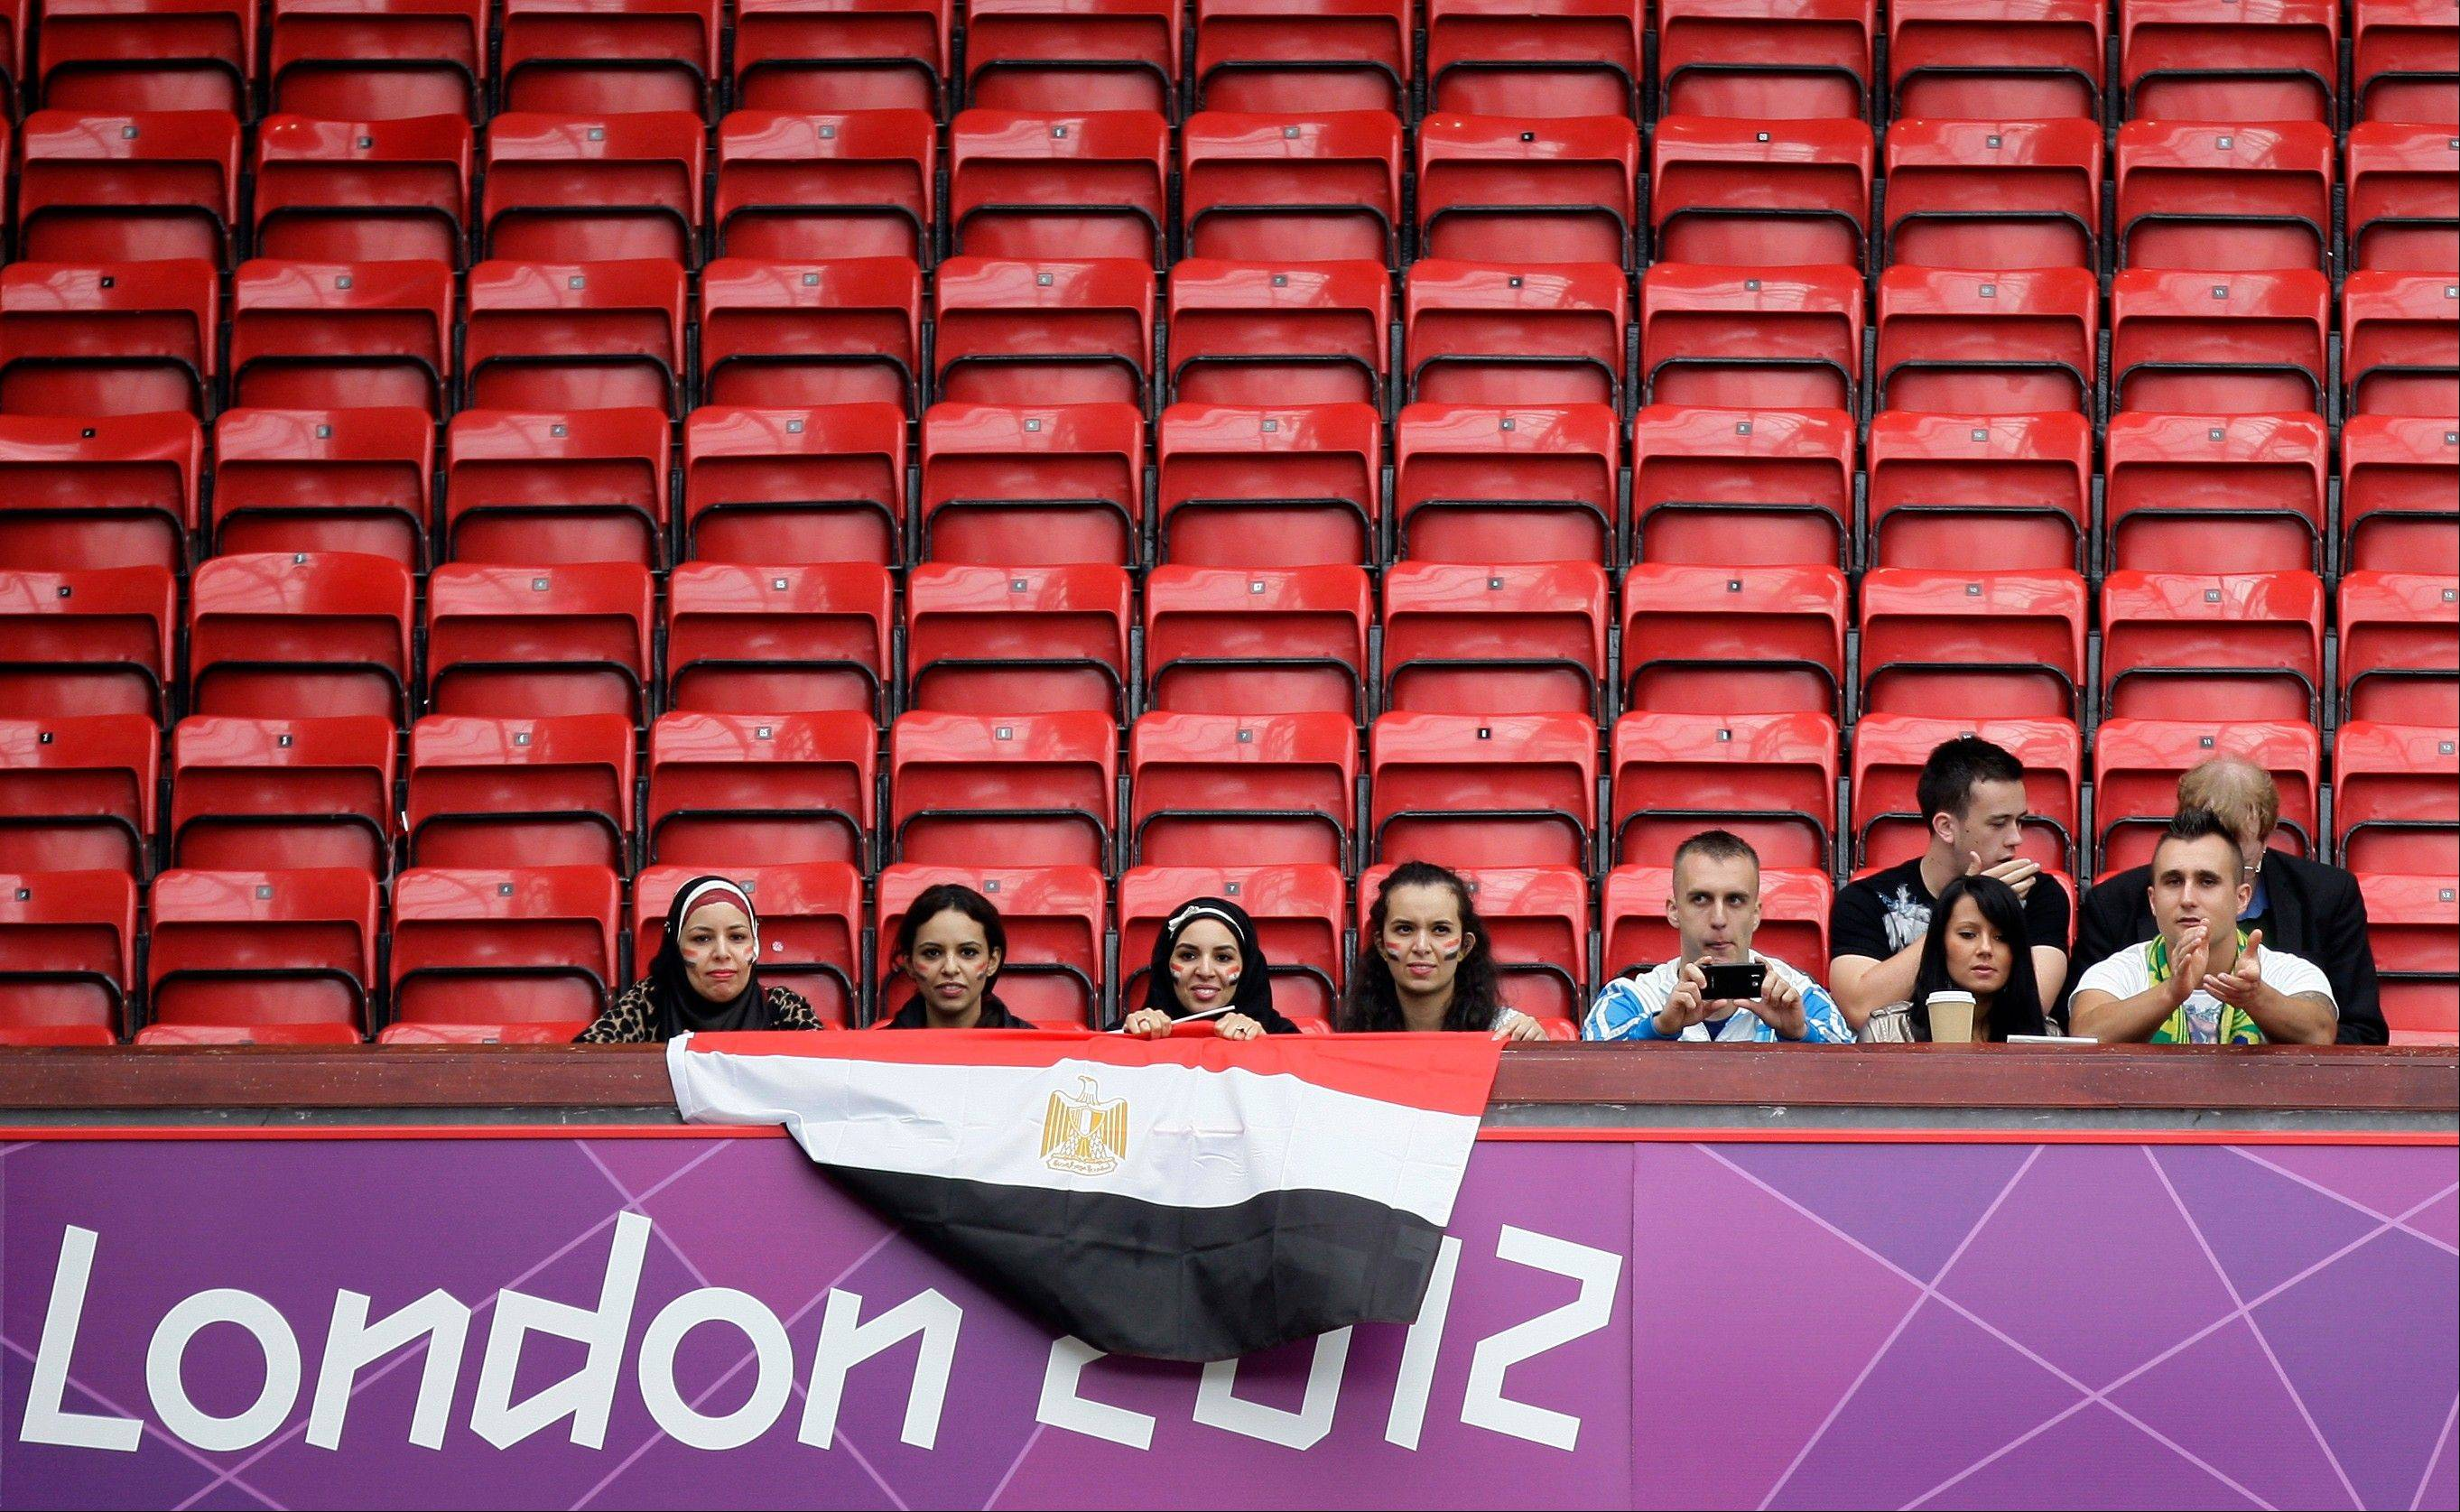 Spectators sit amongst empty seats before Egypt�s group C men�s soccer match against New Zealand at the London 2012 Summer Olympics, Sunday at Old Trafford Stadium in Manchester, England.